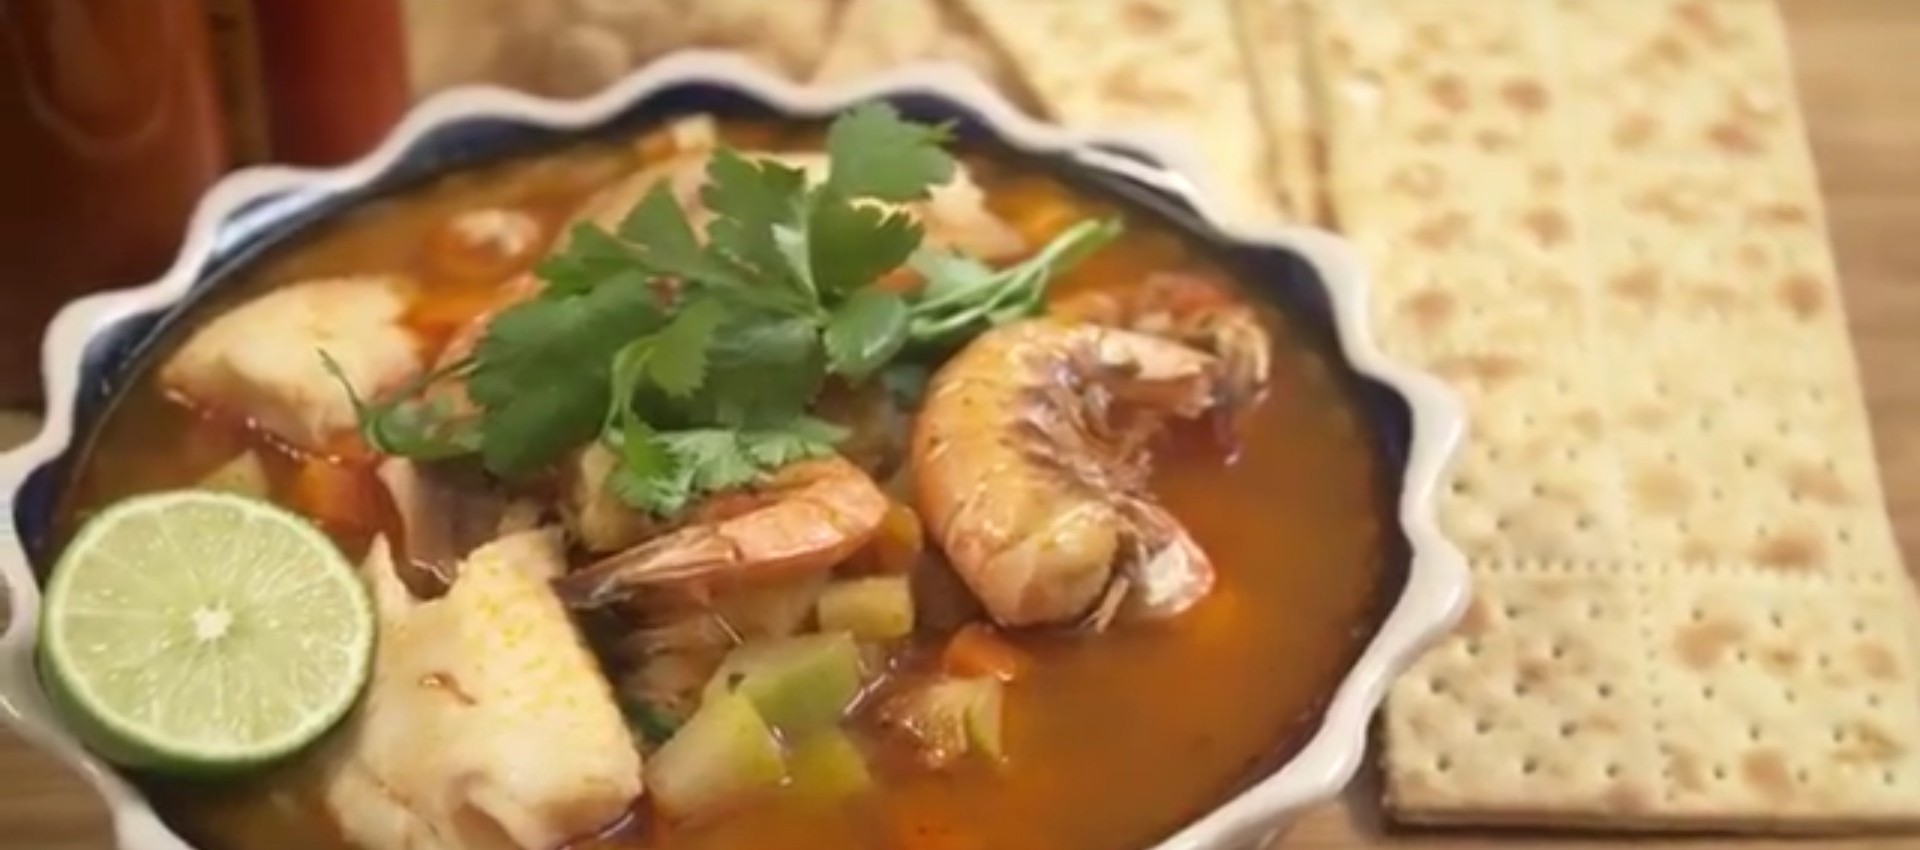 Fish Soup Image